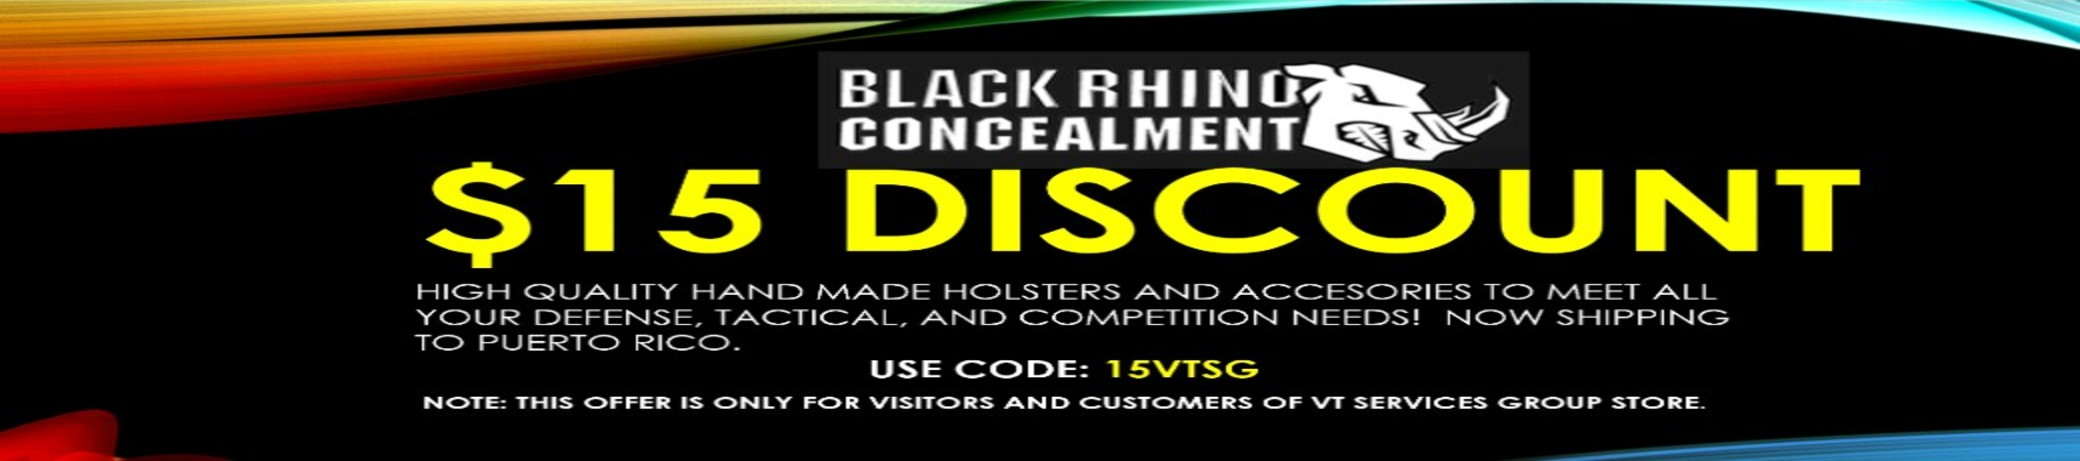 https://blackrhinoconcealment.com/